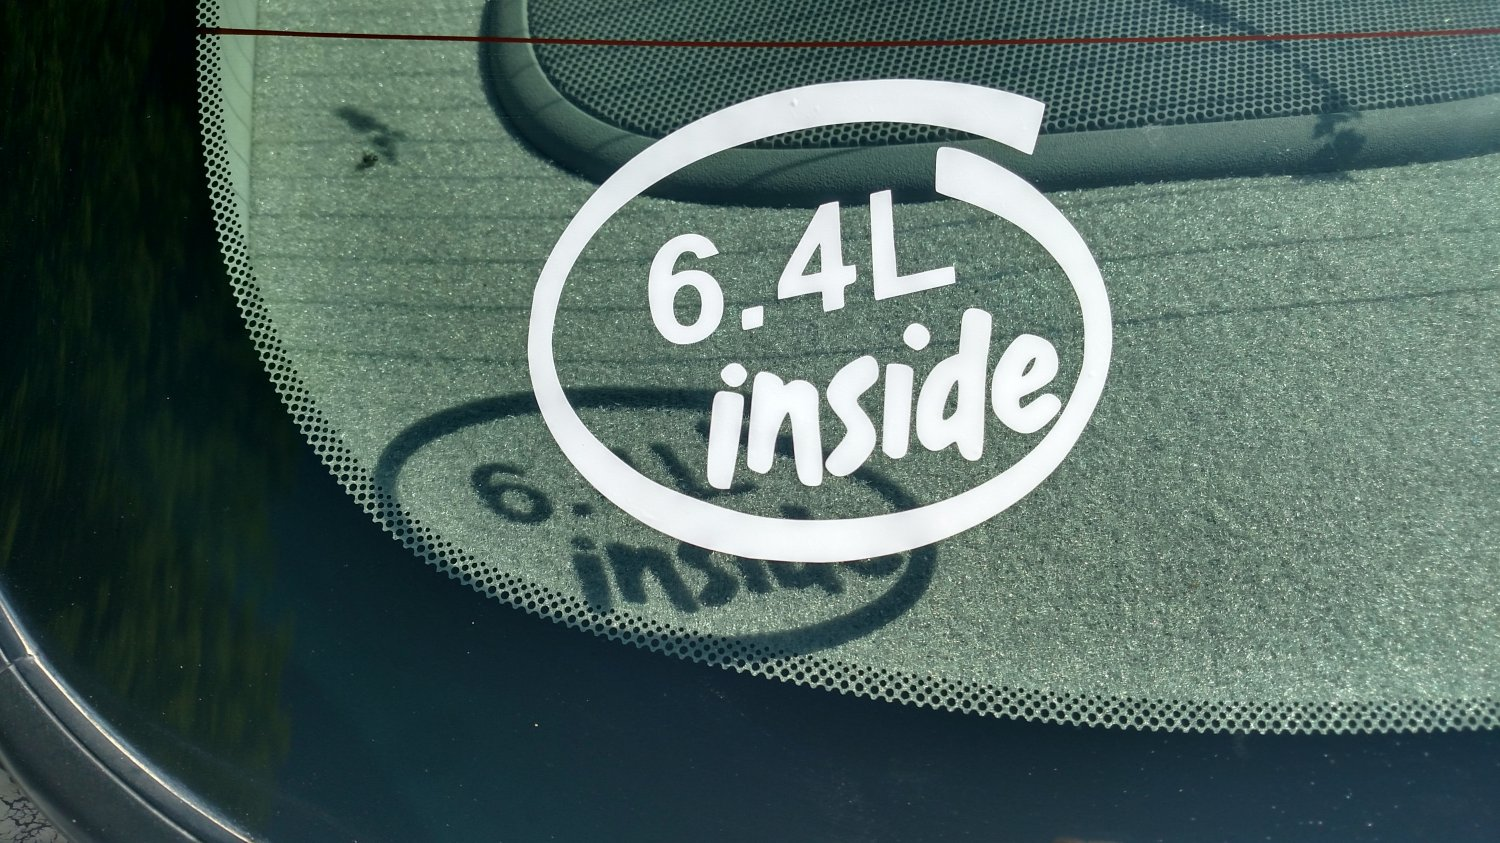 6.4L Inside Vinyl Car Window Bumper Sticker Decal Laptop 6.4 Ford Hemi Power Stroke Diesel